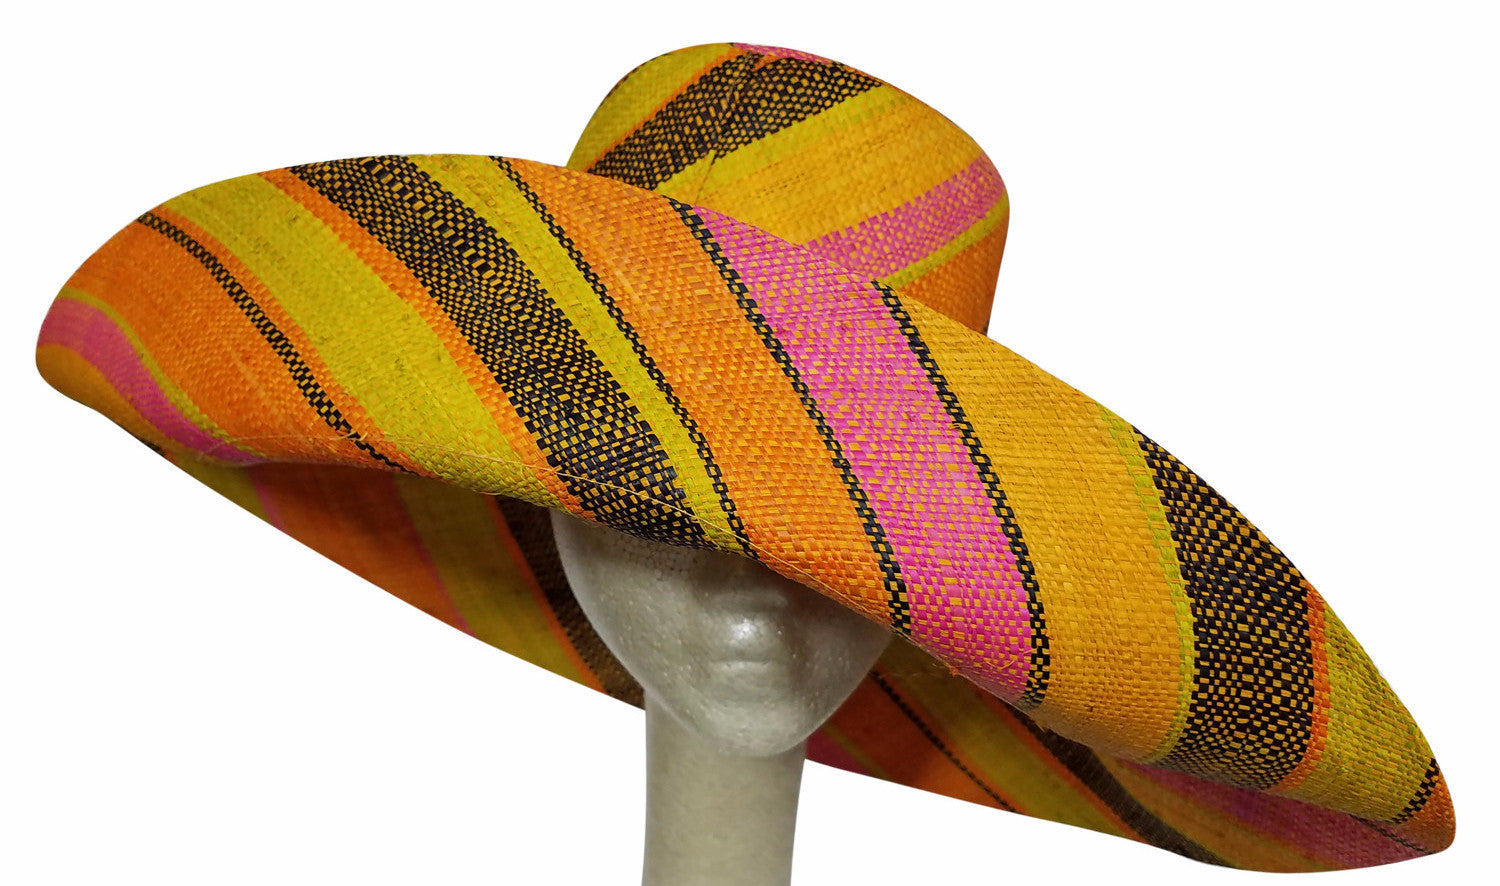 Abimbola: Multicolored Madagascar Big Brim Raffia Sun Hat